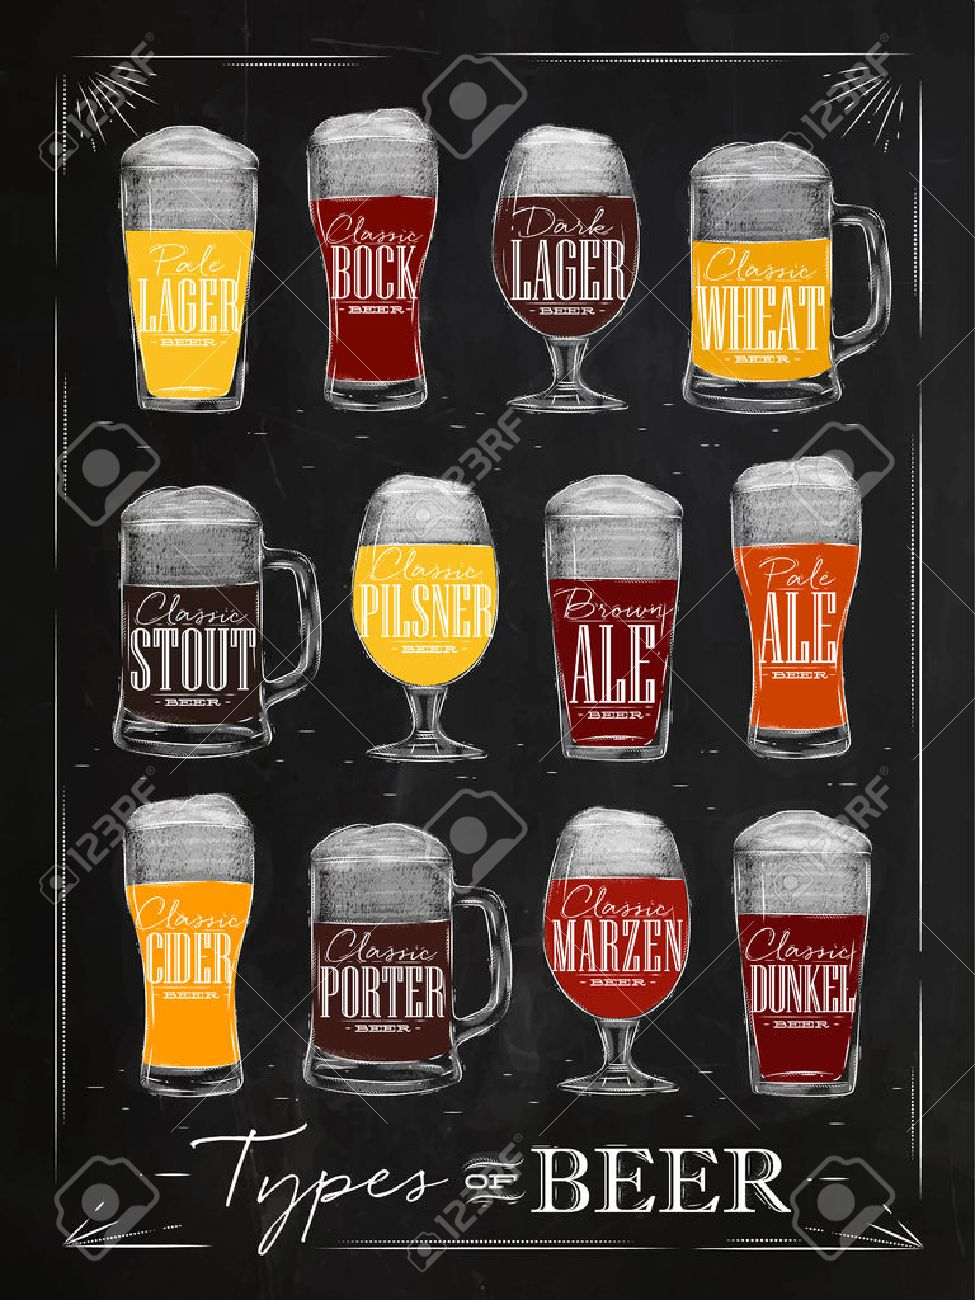 Poster beer types with main types of beer pale lager, bock, dark lager, wheat, brown ale, pale ale, cider, porter, marzen, dunkel drawing with chalk in vintage style on chalkboard. - 52579481